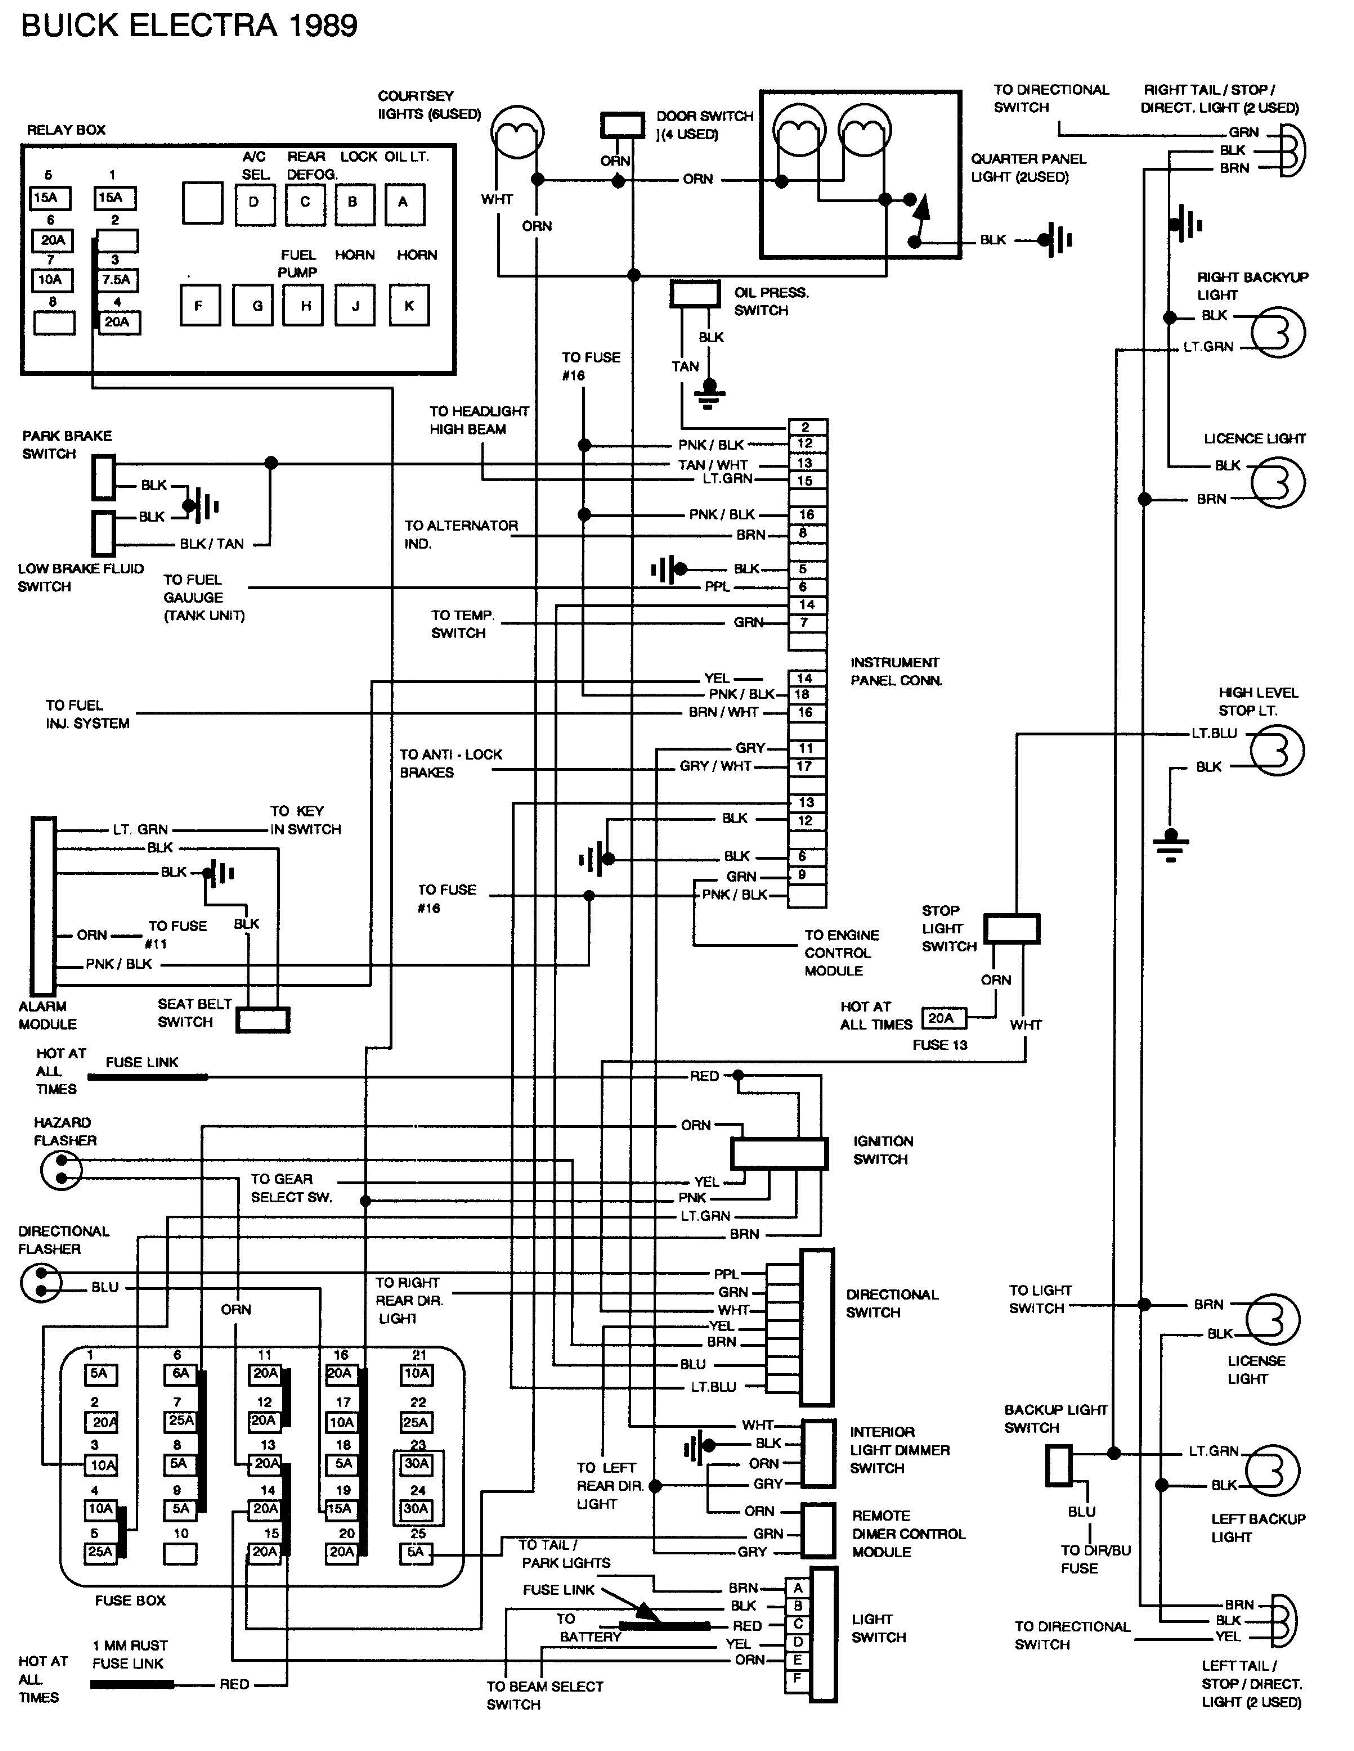 2010 buick enclave wiring diagram all wiring diagram 2010 buick enclave cylinder diagram wiring diagram library 2003 buick regal wiring diagram 2005 buick lacrosse